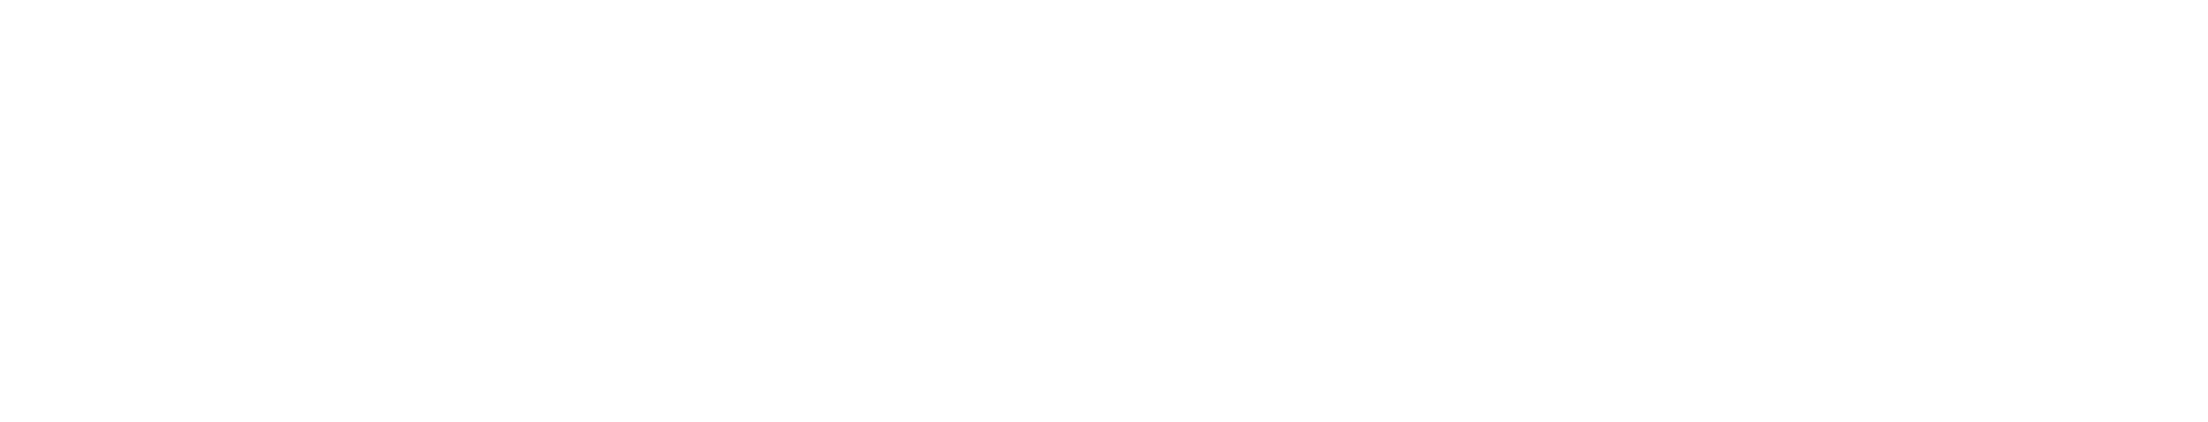 Florida Avenue Brewing Online Shop